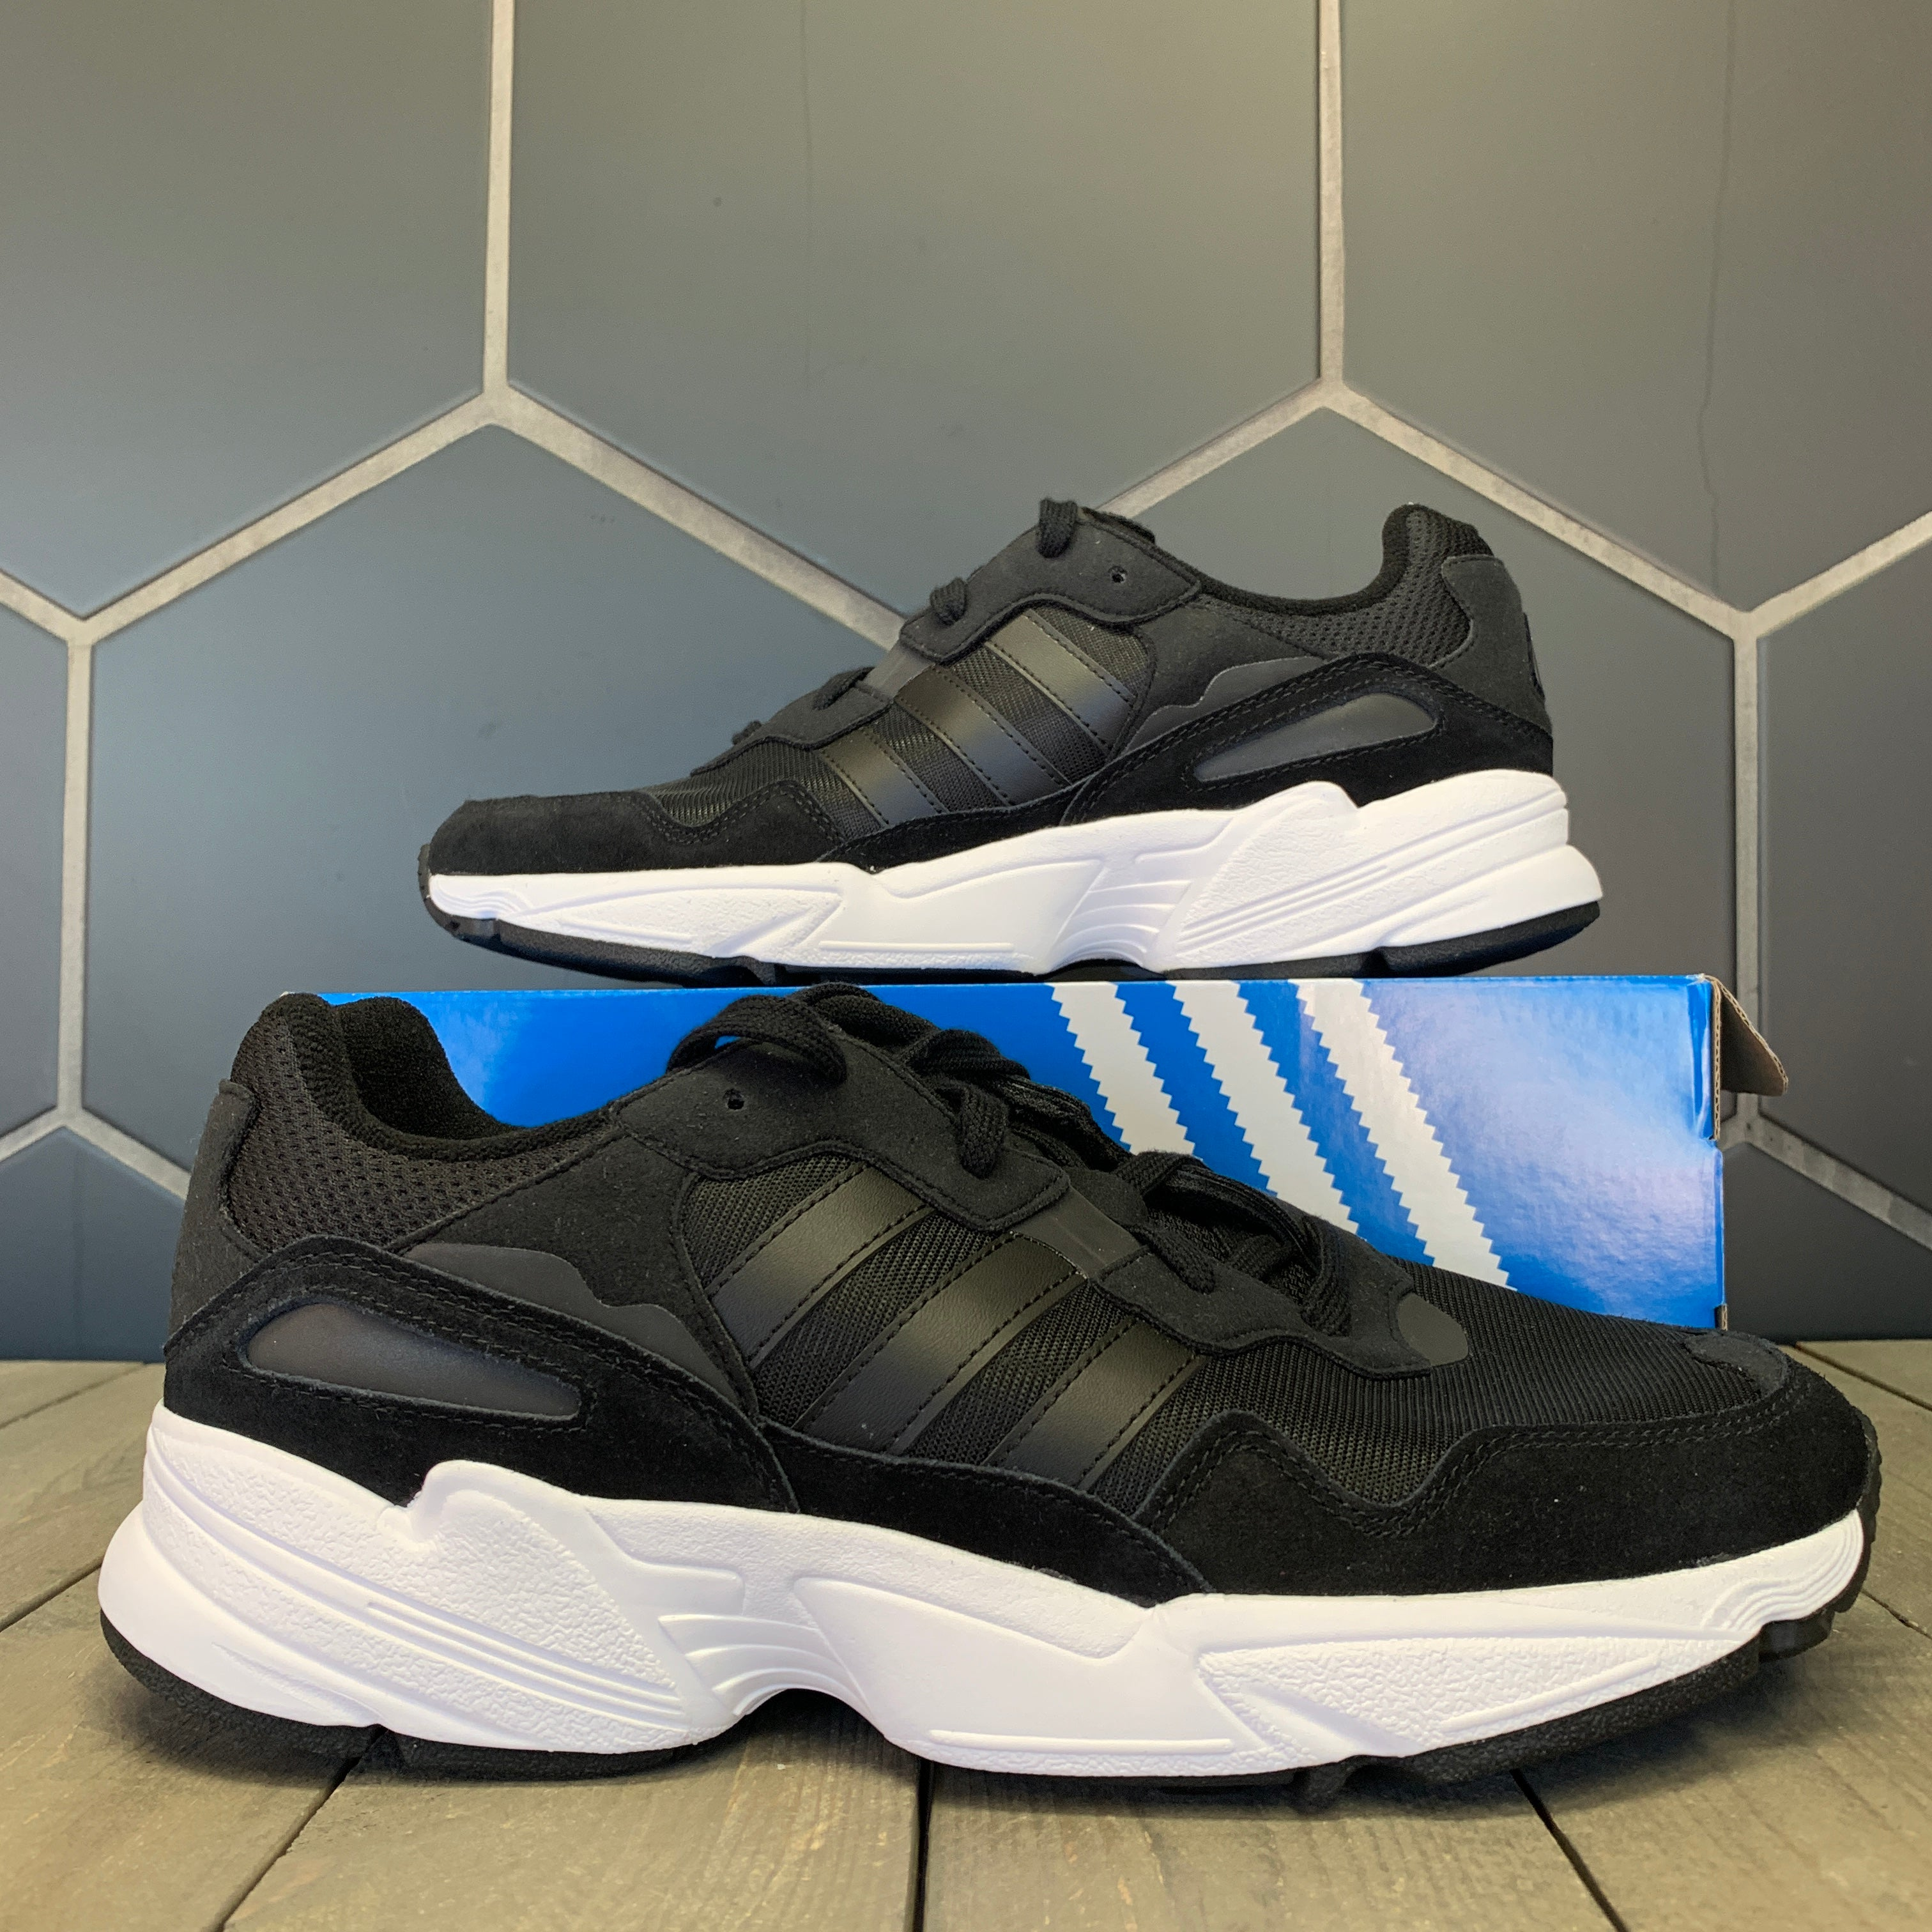 New W/ Box! Adidas Yung-96 Core Black White Running Shoes (Multiple Sizes)